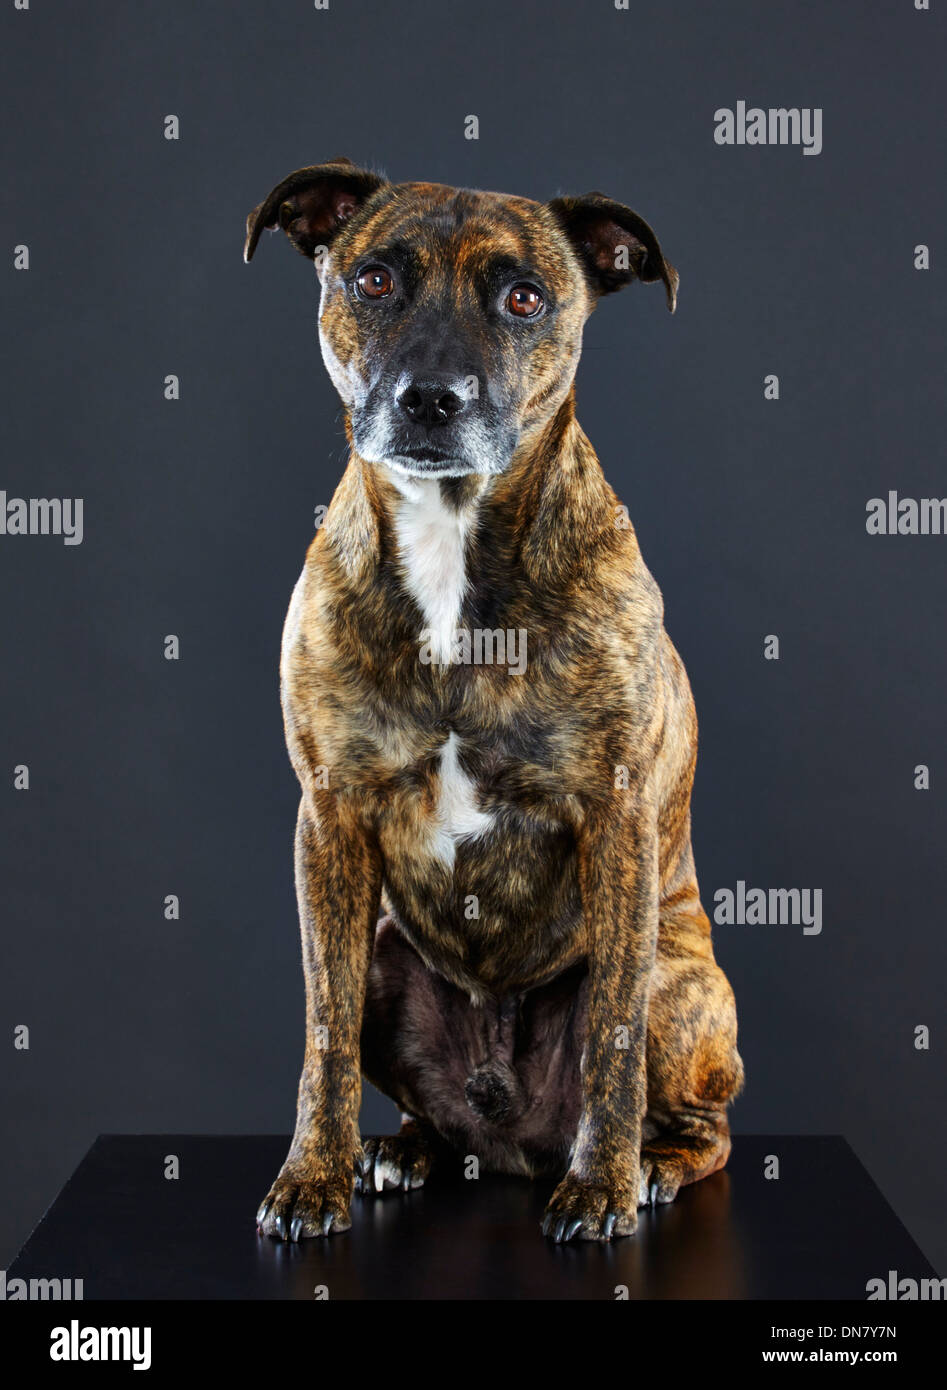 Staffordshire Bull Terrier cross. - Stock Image